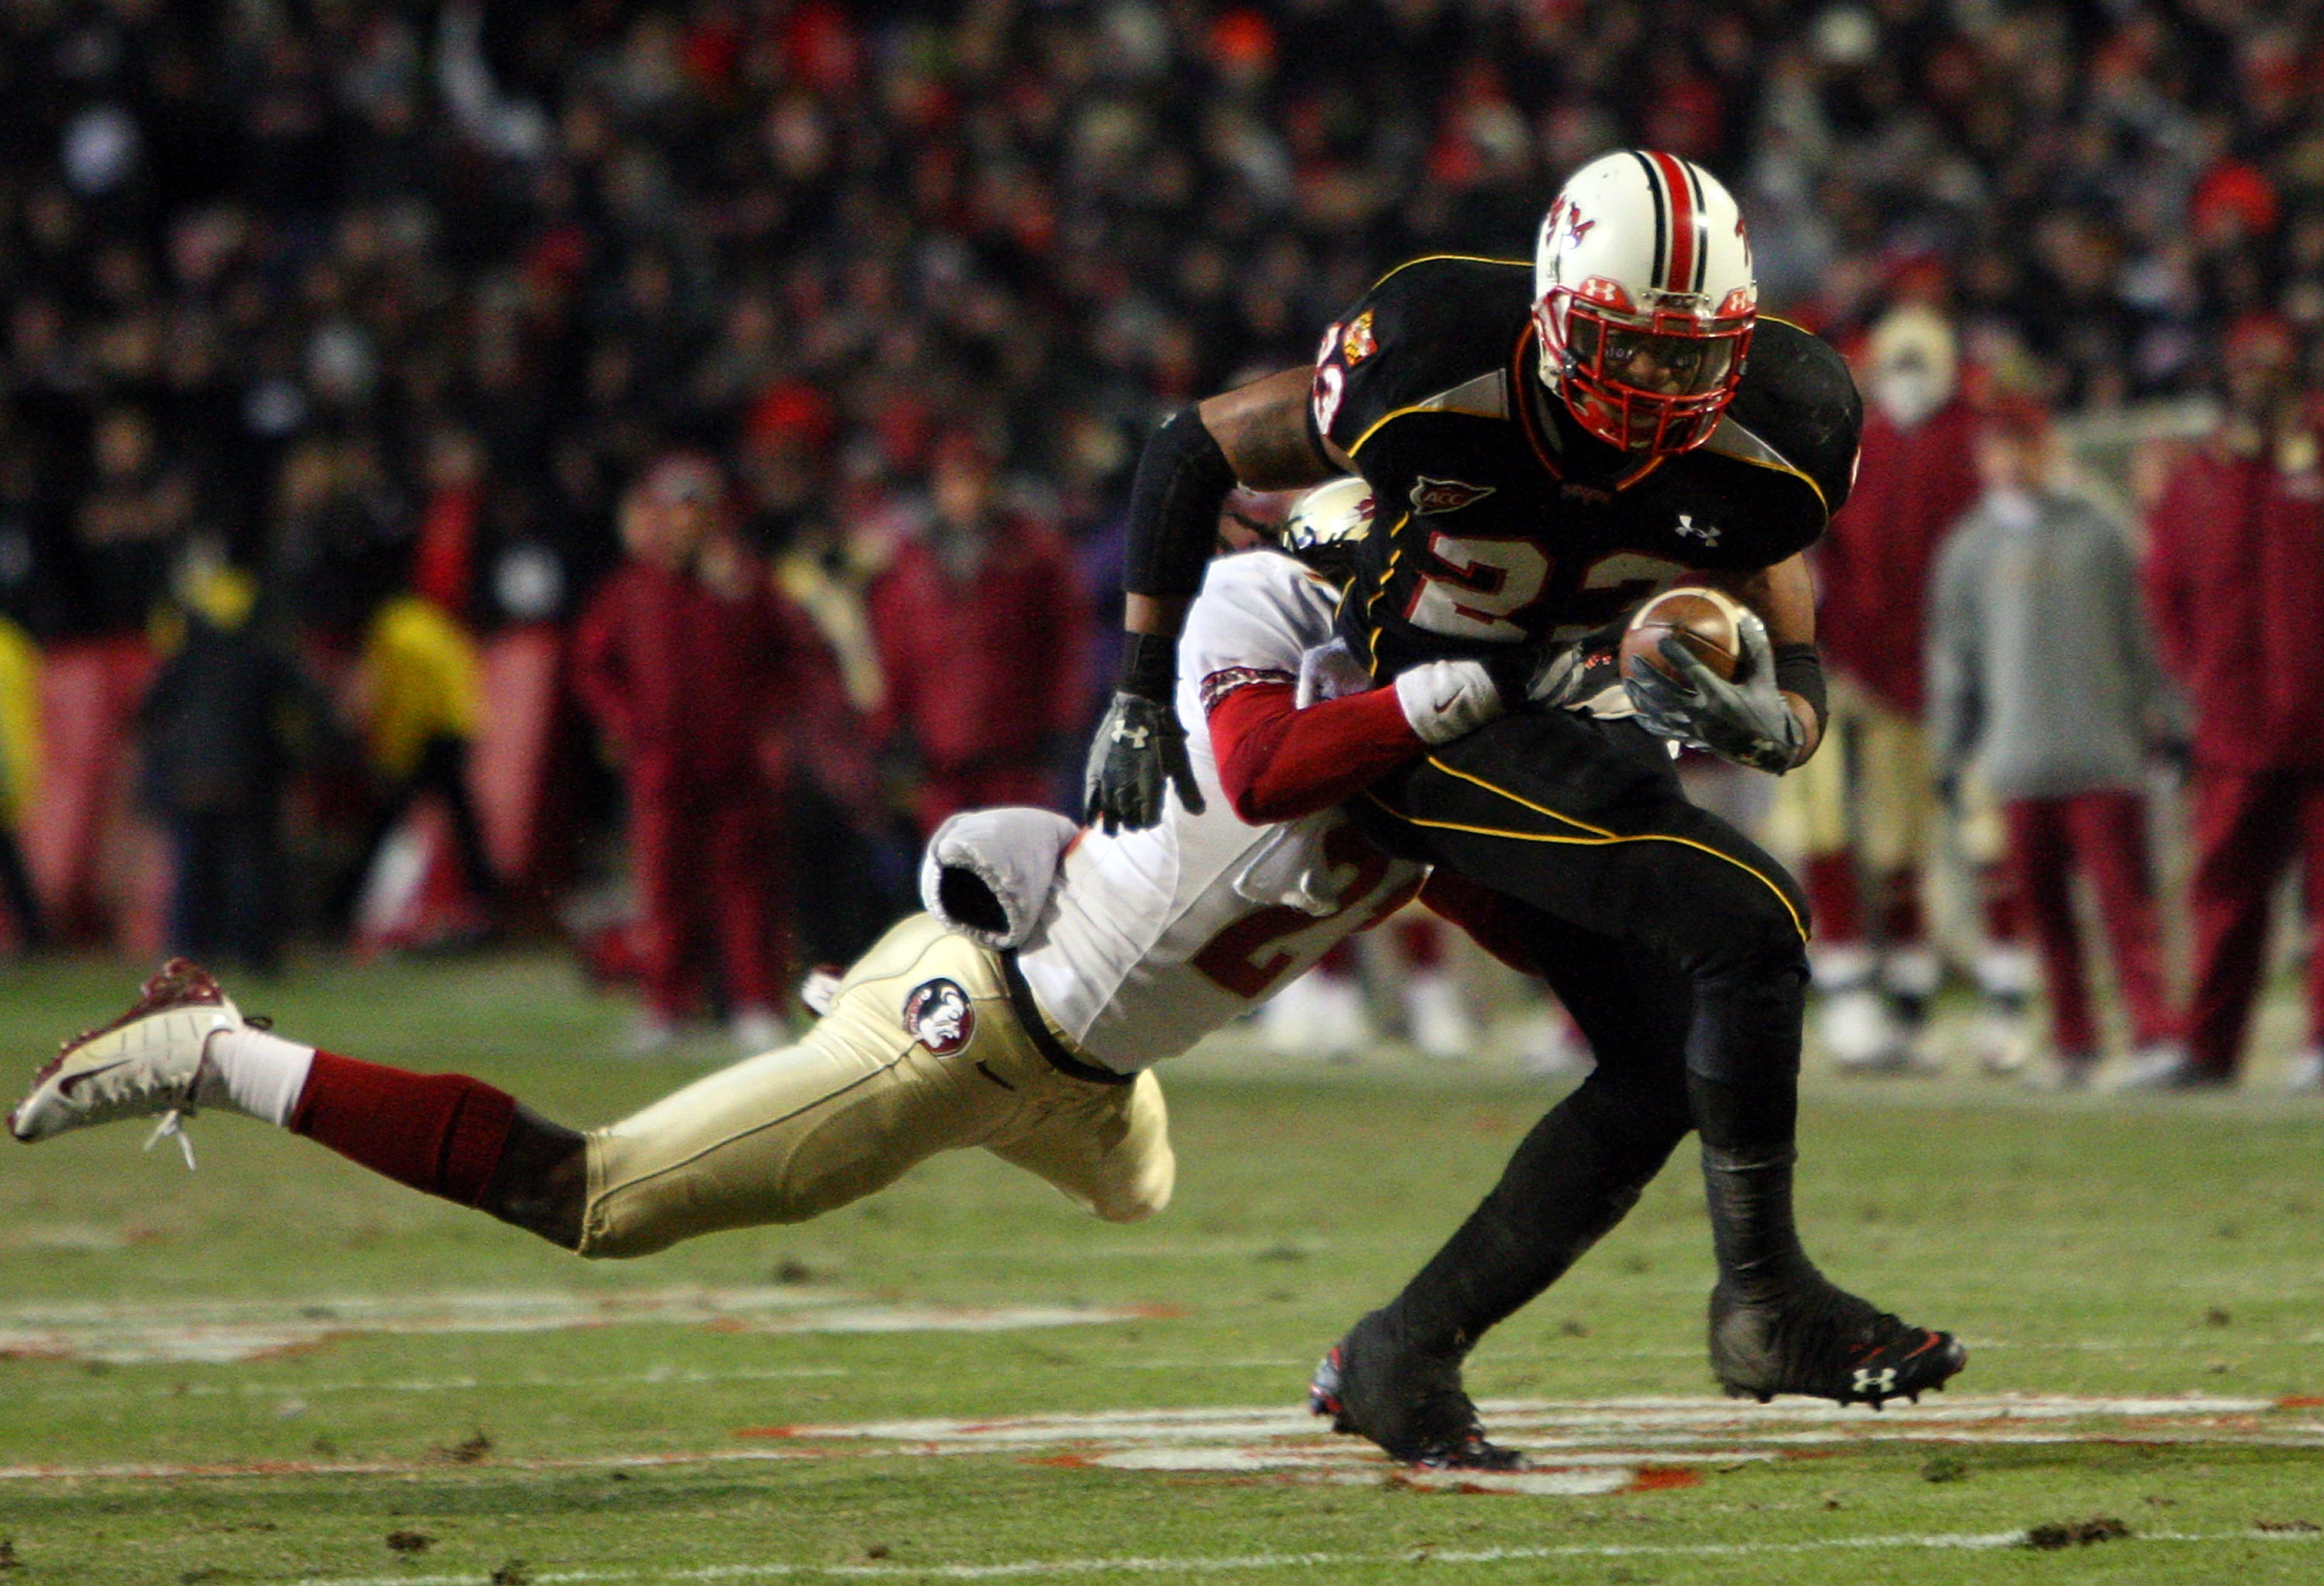 COLLEGE PARK, MD - NOVEMBER 22:  DaRel Scott #23 of the Maryland Terrapins runs the ball past Patrick Robinson #21 of the Florida State Seminoles on November 22, 2008 at Byrd Stadium in College Park, Maryland.  (Photo by Jim McIsaac/Getty Images)